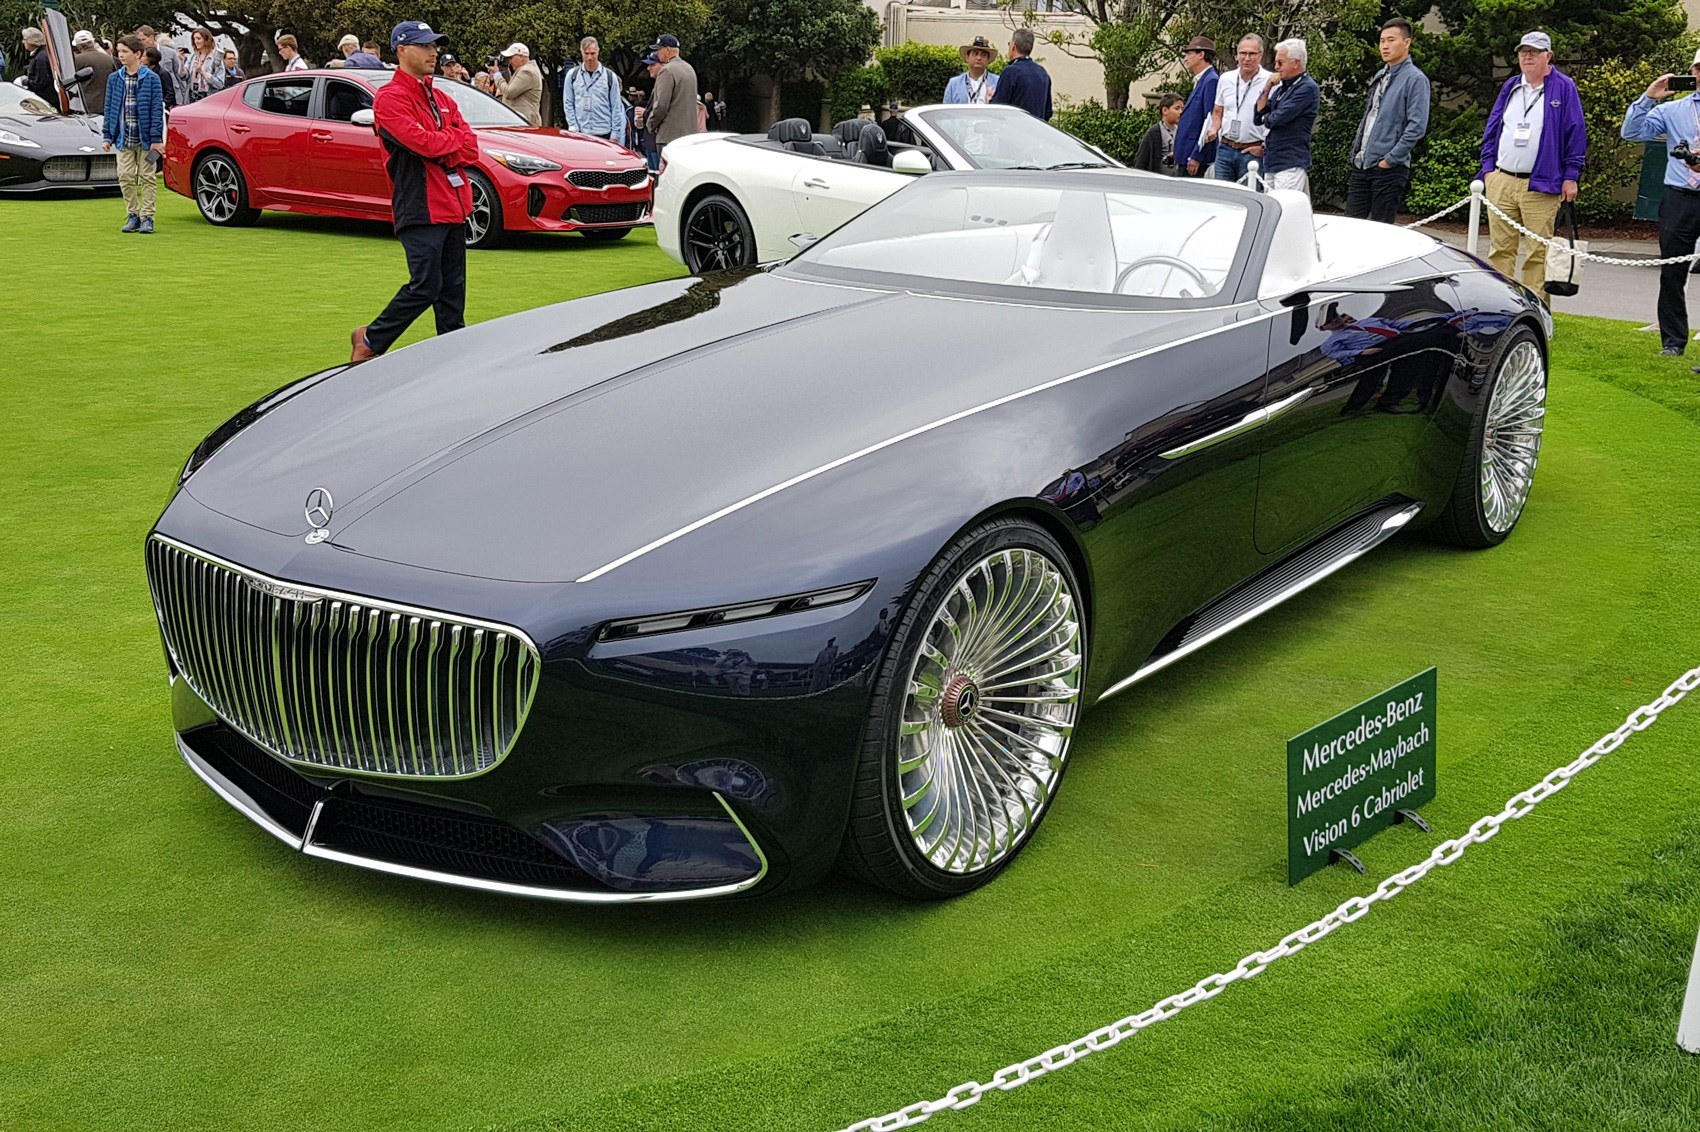 Concours D Elegance >> Gallery Pebble Beach Concours D Elegance 2017 In Pictures